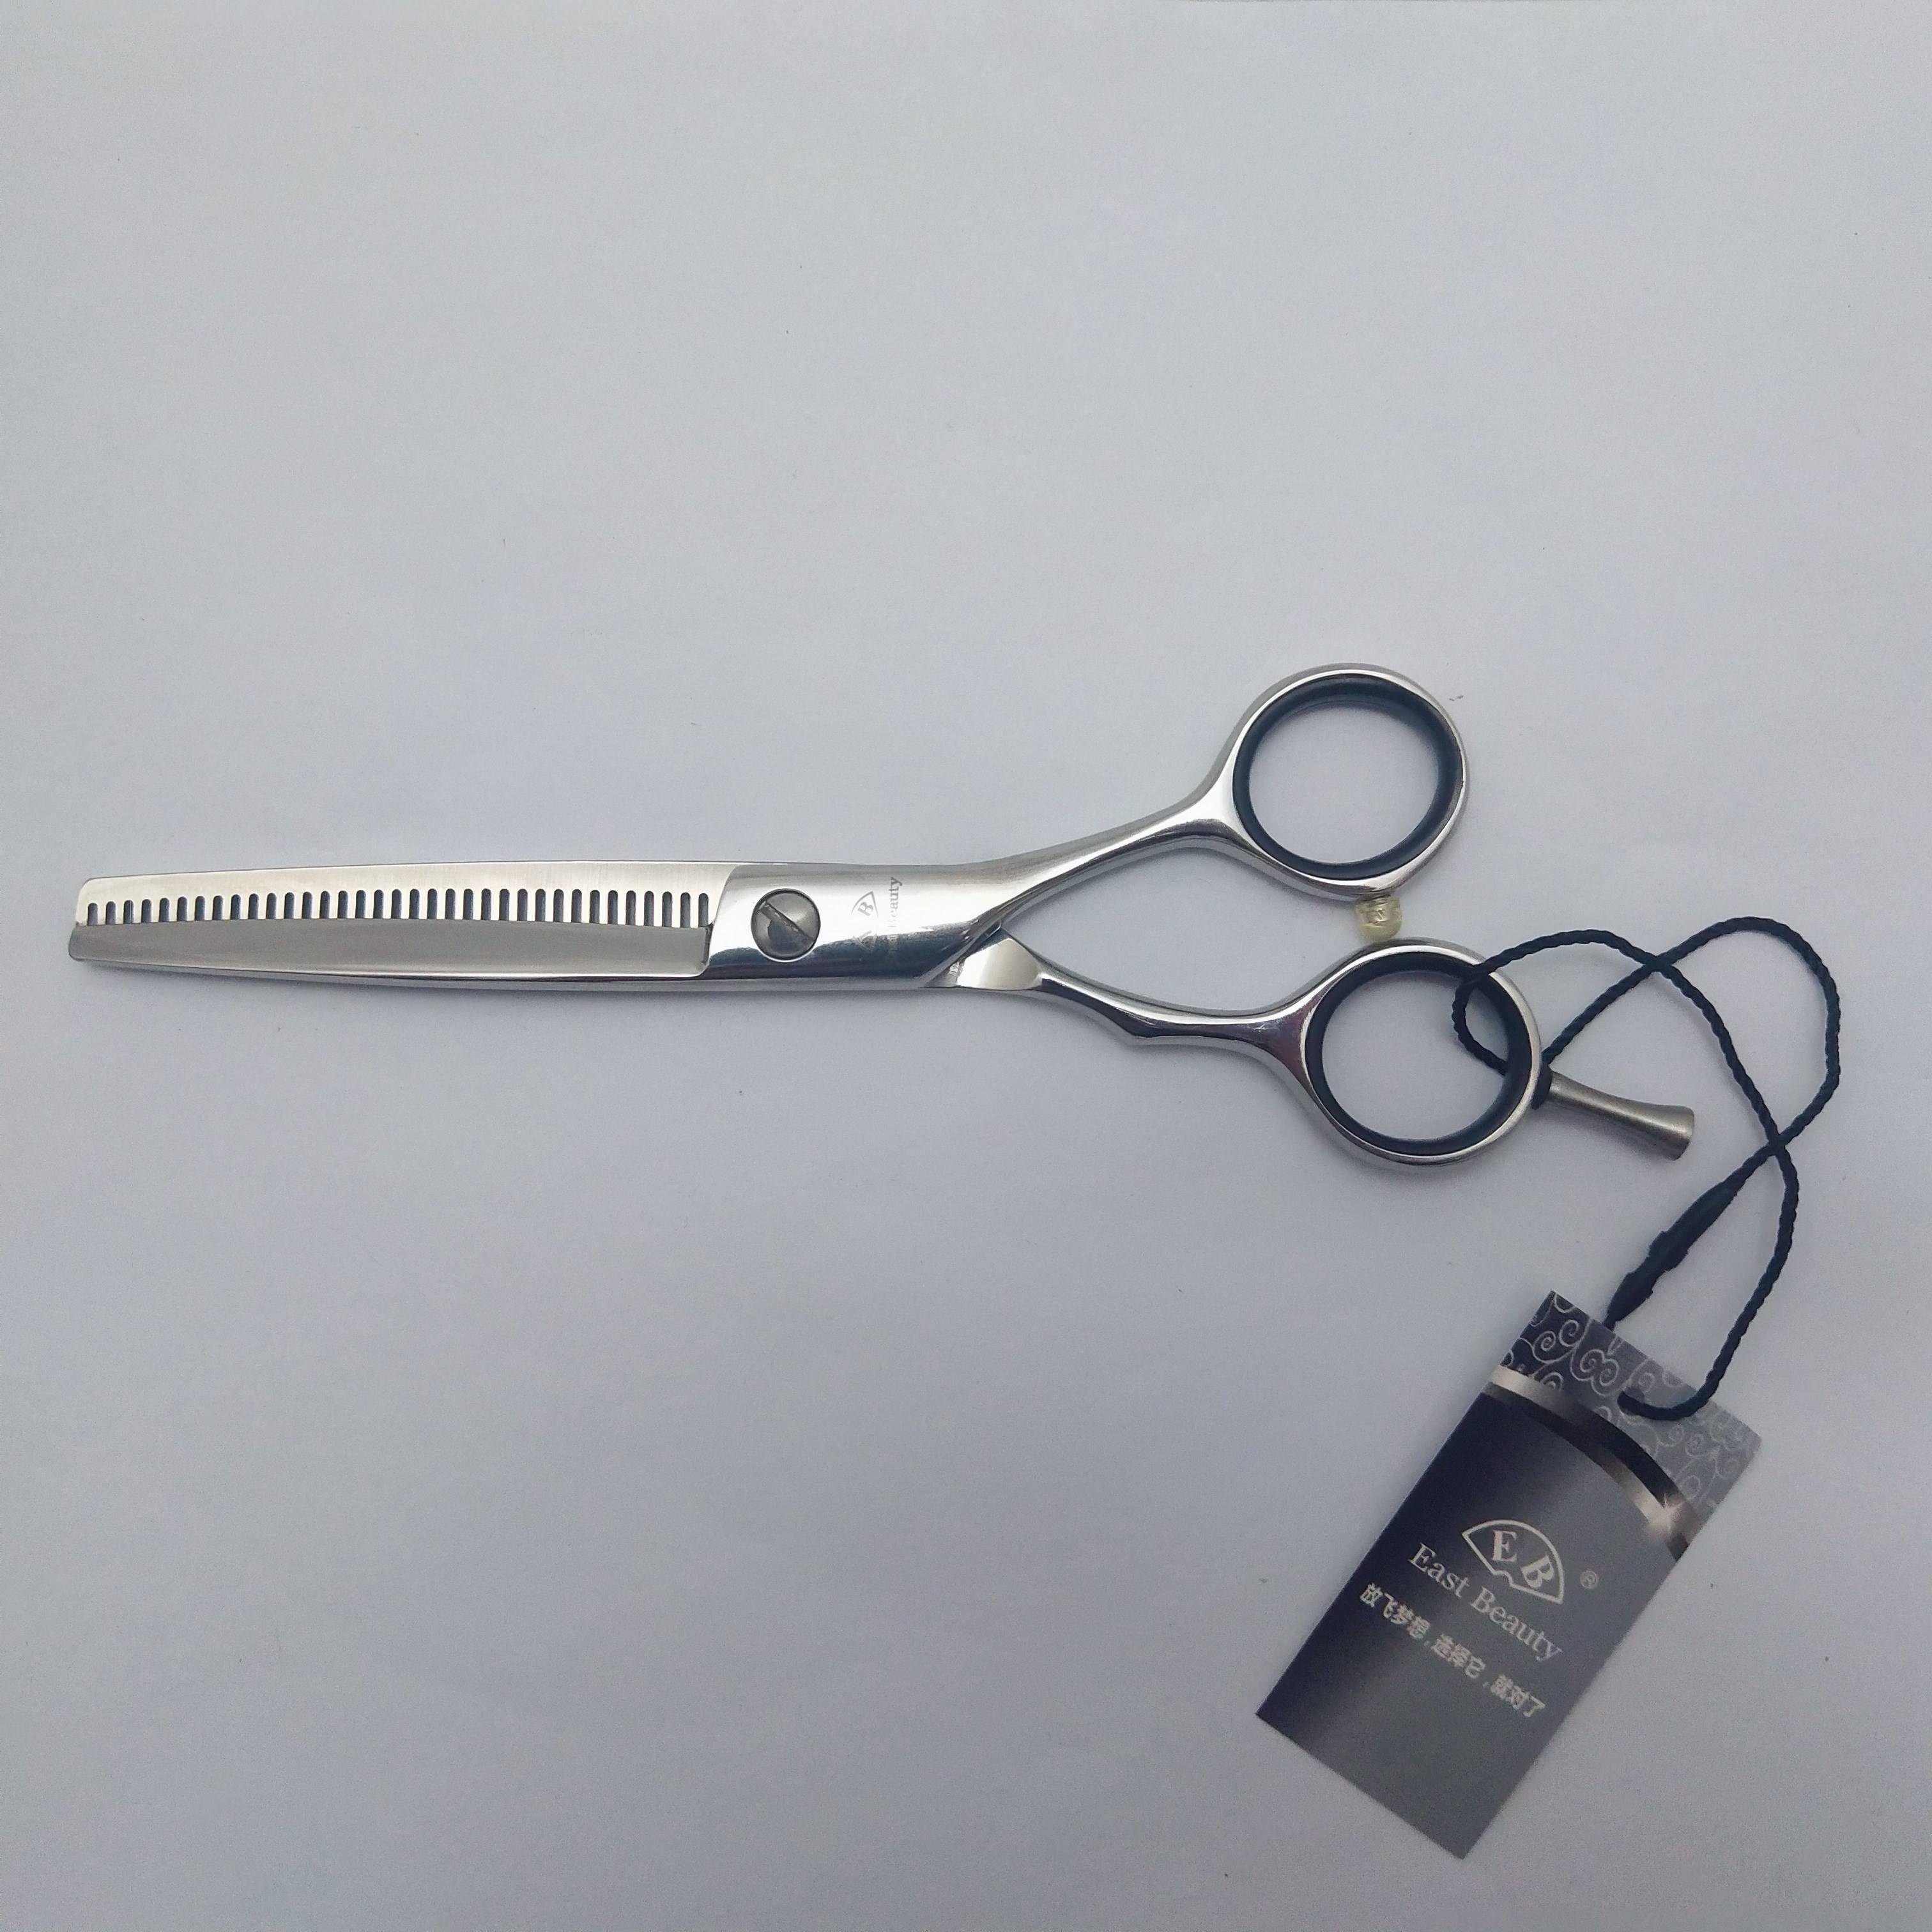 East Beauty 440C Stainless Steel High Quality Professional Barber Thinning Hair Scissors